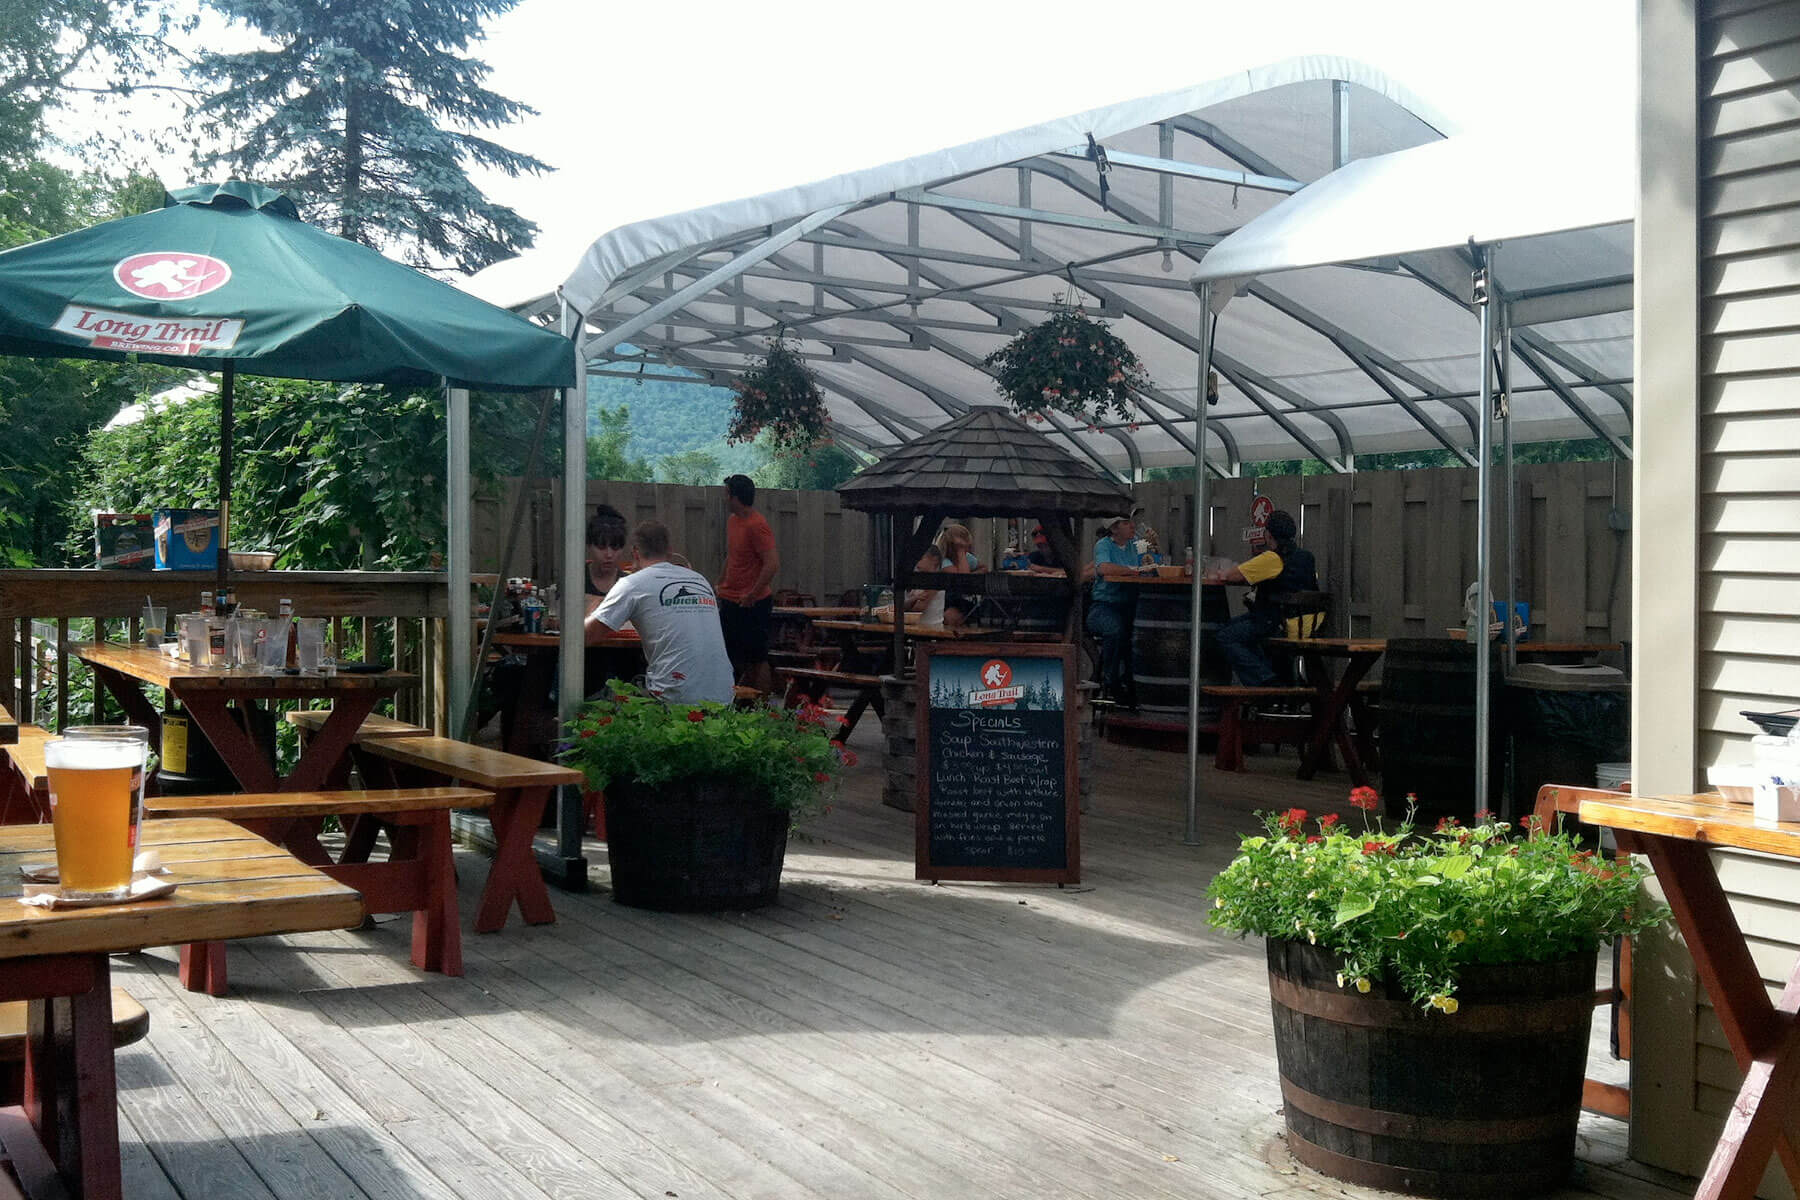 Outside on the patio at Long Trail Brewing Company in Bridgewater Corners, Vermont